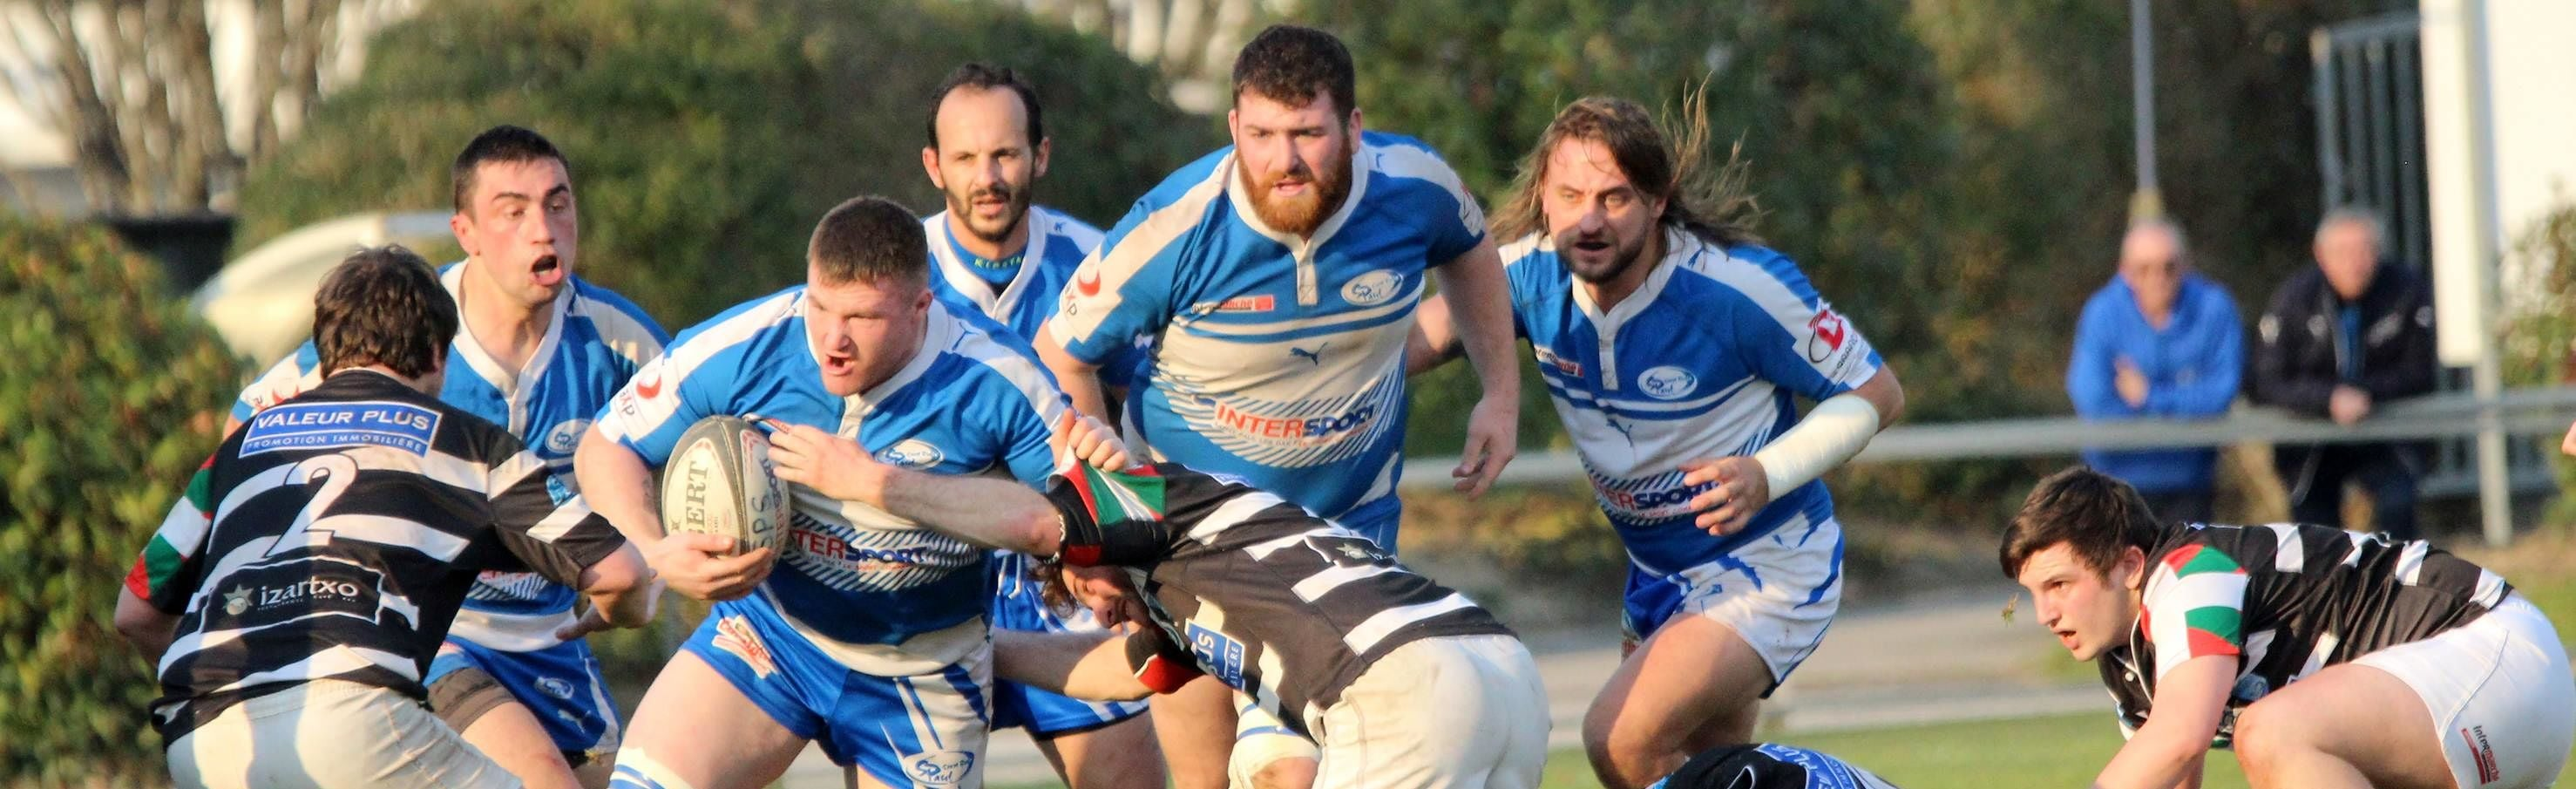 St Paul Sports Rugby